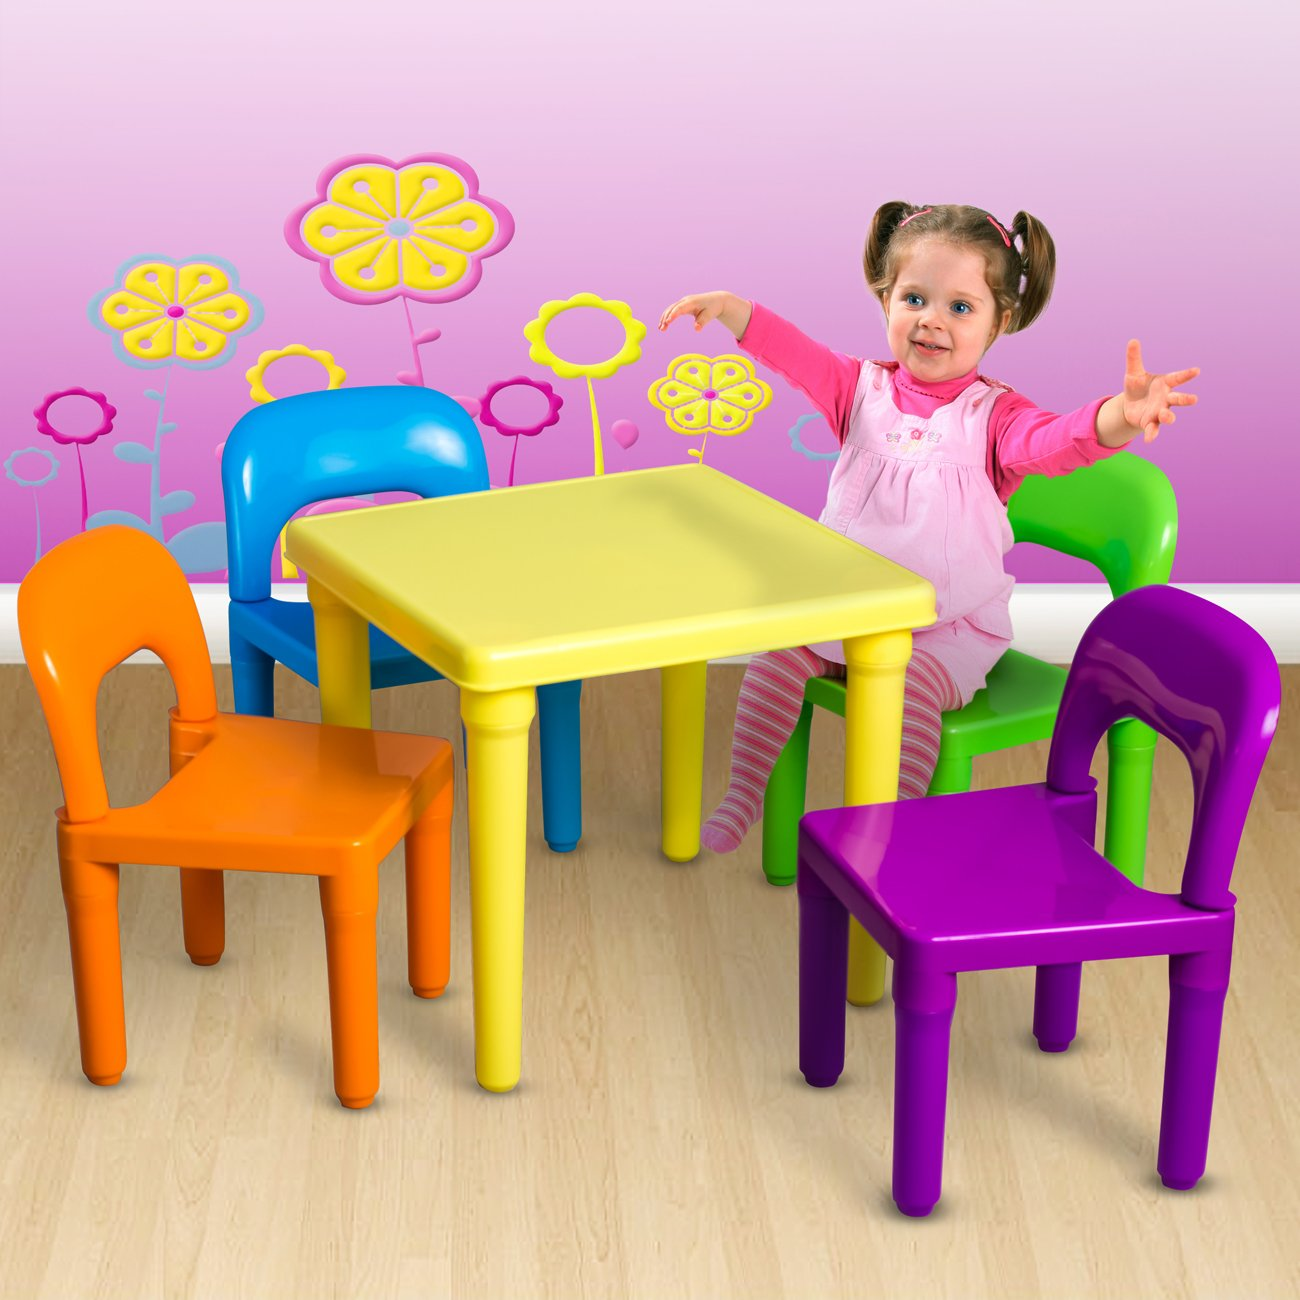 High Quality Amazon.com: Children And Kids Table And Chairs Set | Includes 4 Plastic  Chairs And 1 Art Craft Study Activity Table U2013 Living Room Furniture U2013  Picnic Table ...